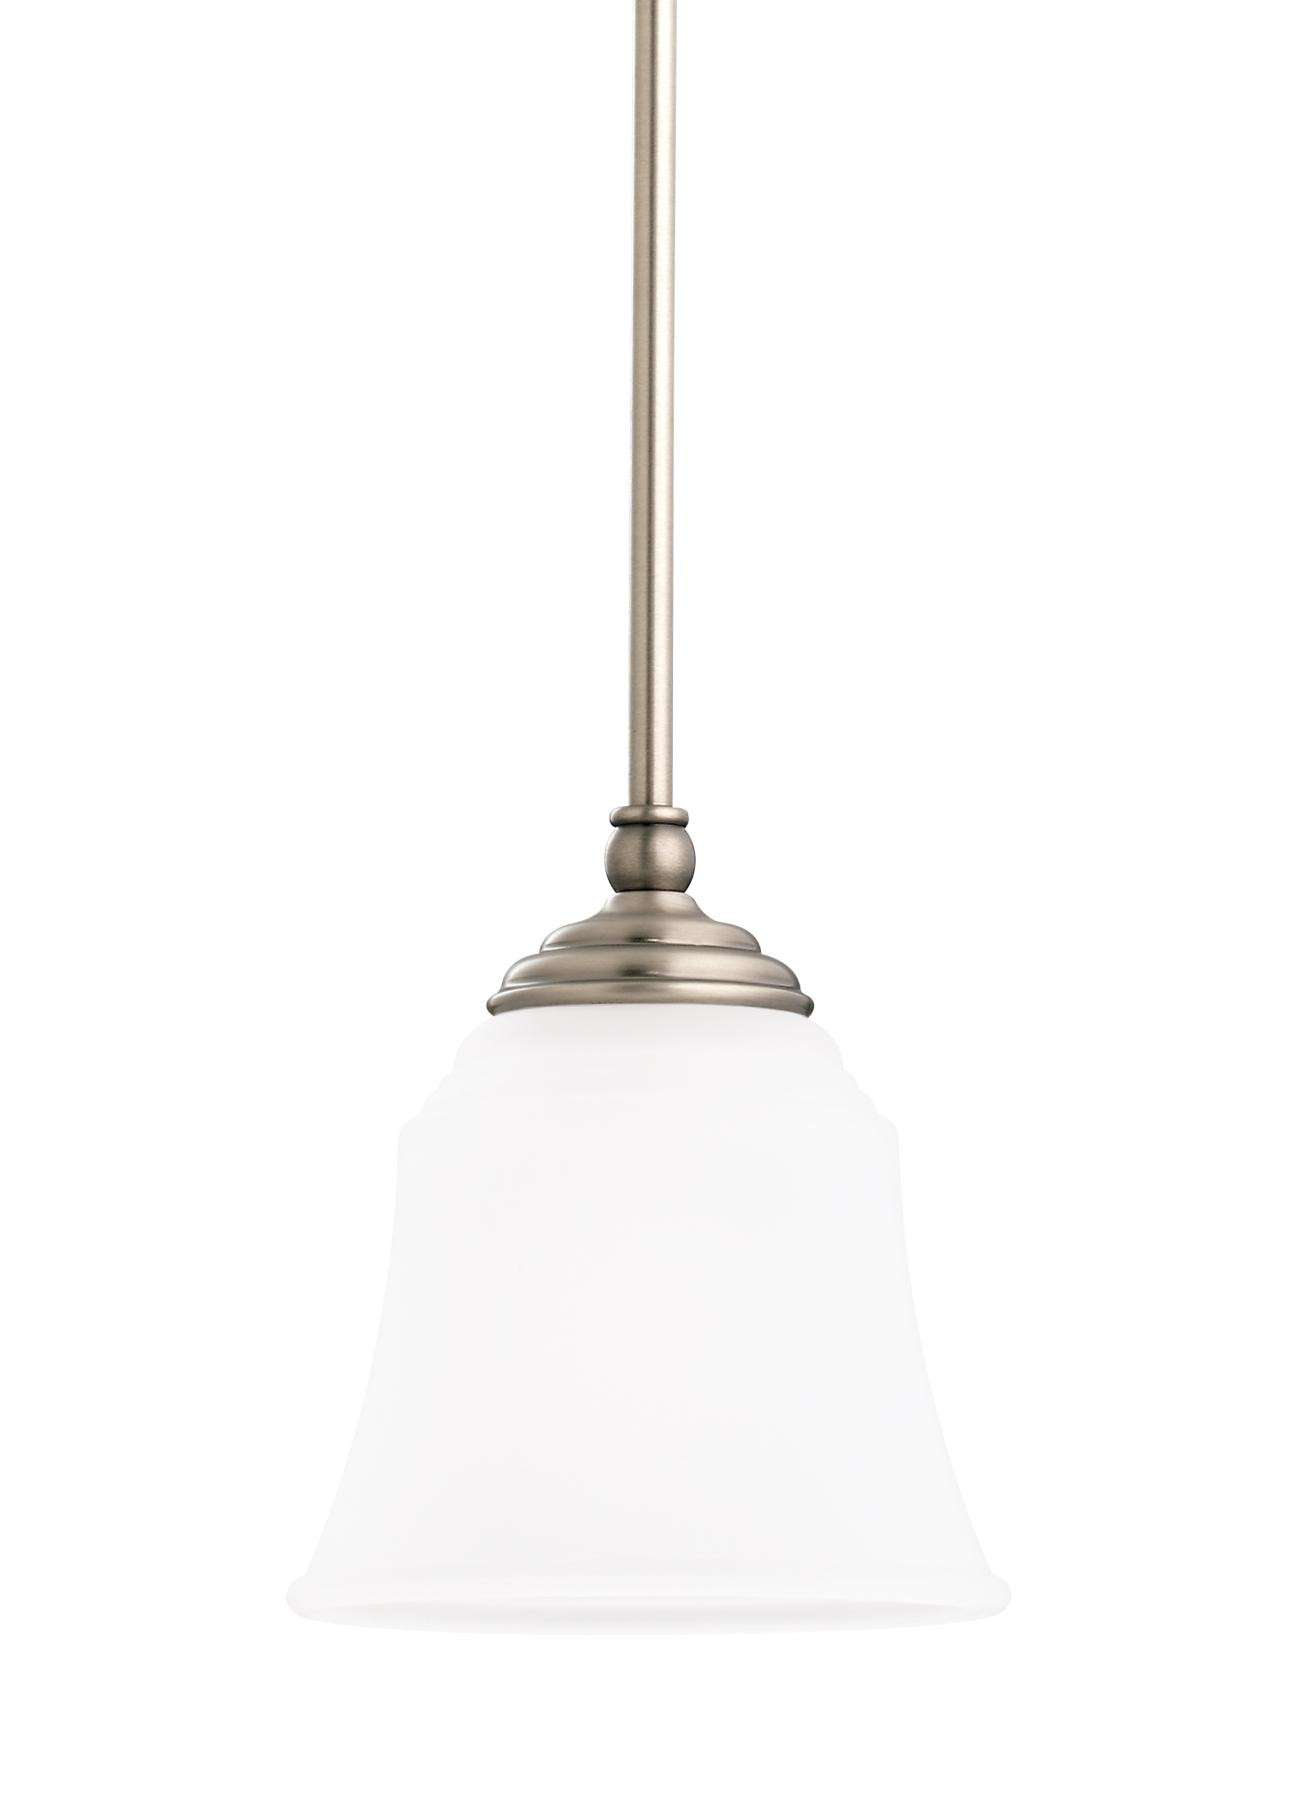 Seagull Lighting 61380-965 Single Light Mini Pendant in Antique Brushed Nickel finish